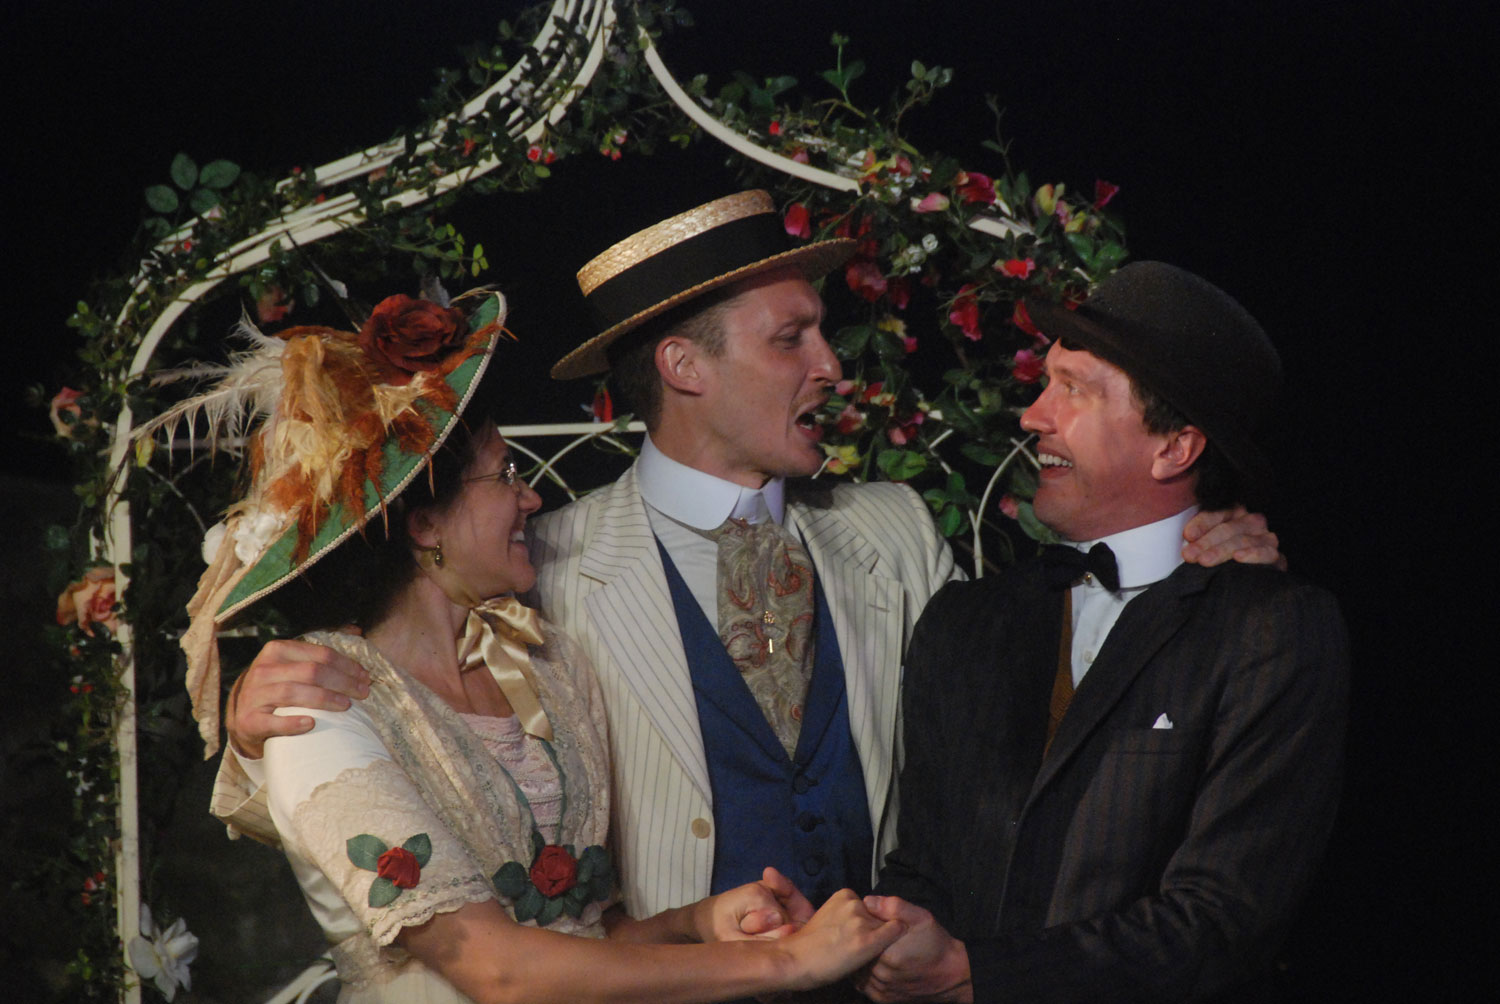 The Importance of Being Earnest - Summer 2012